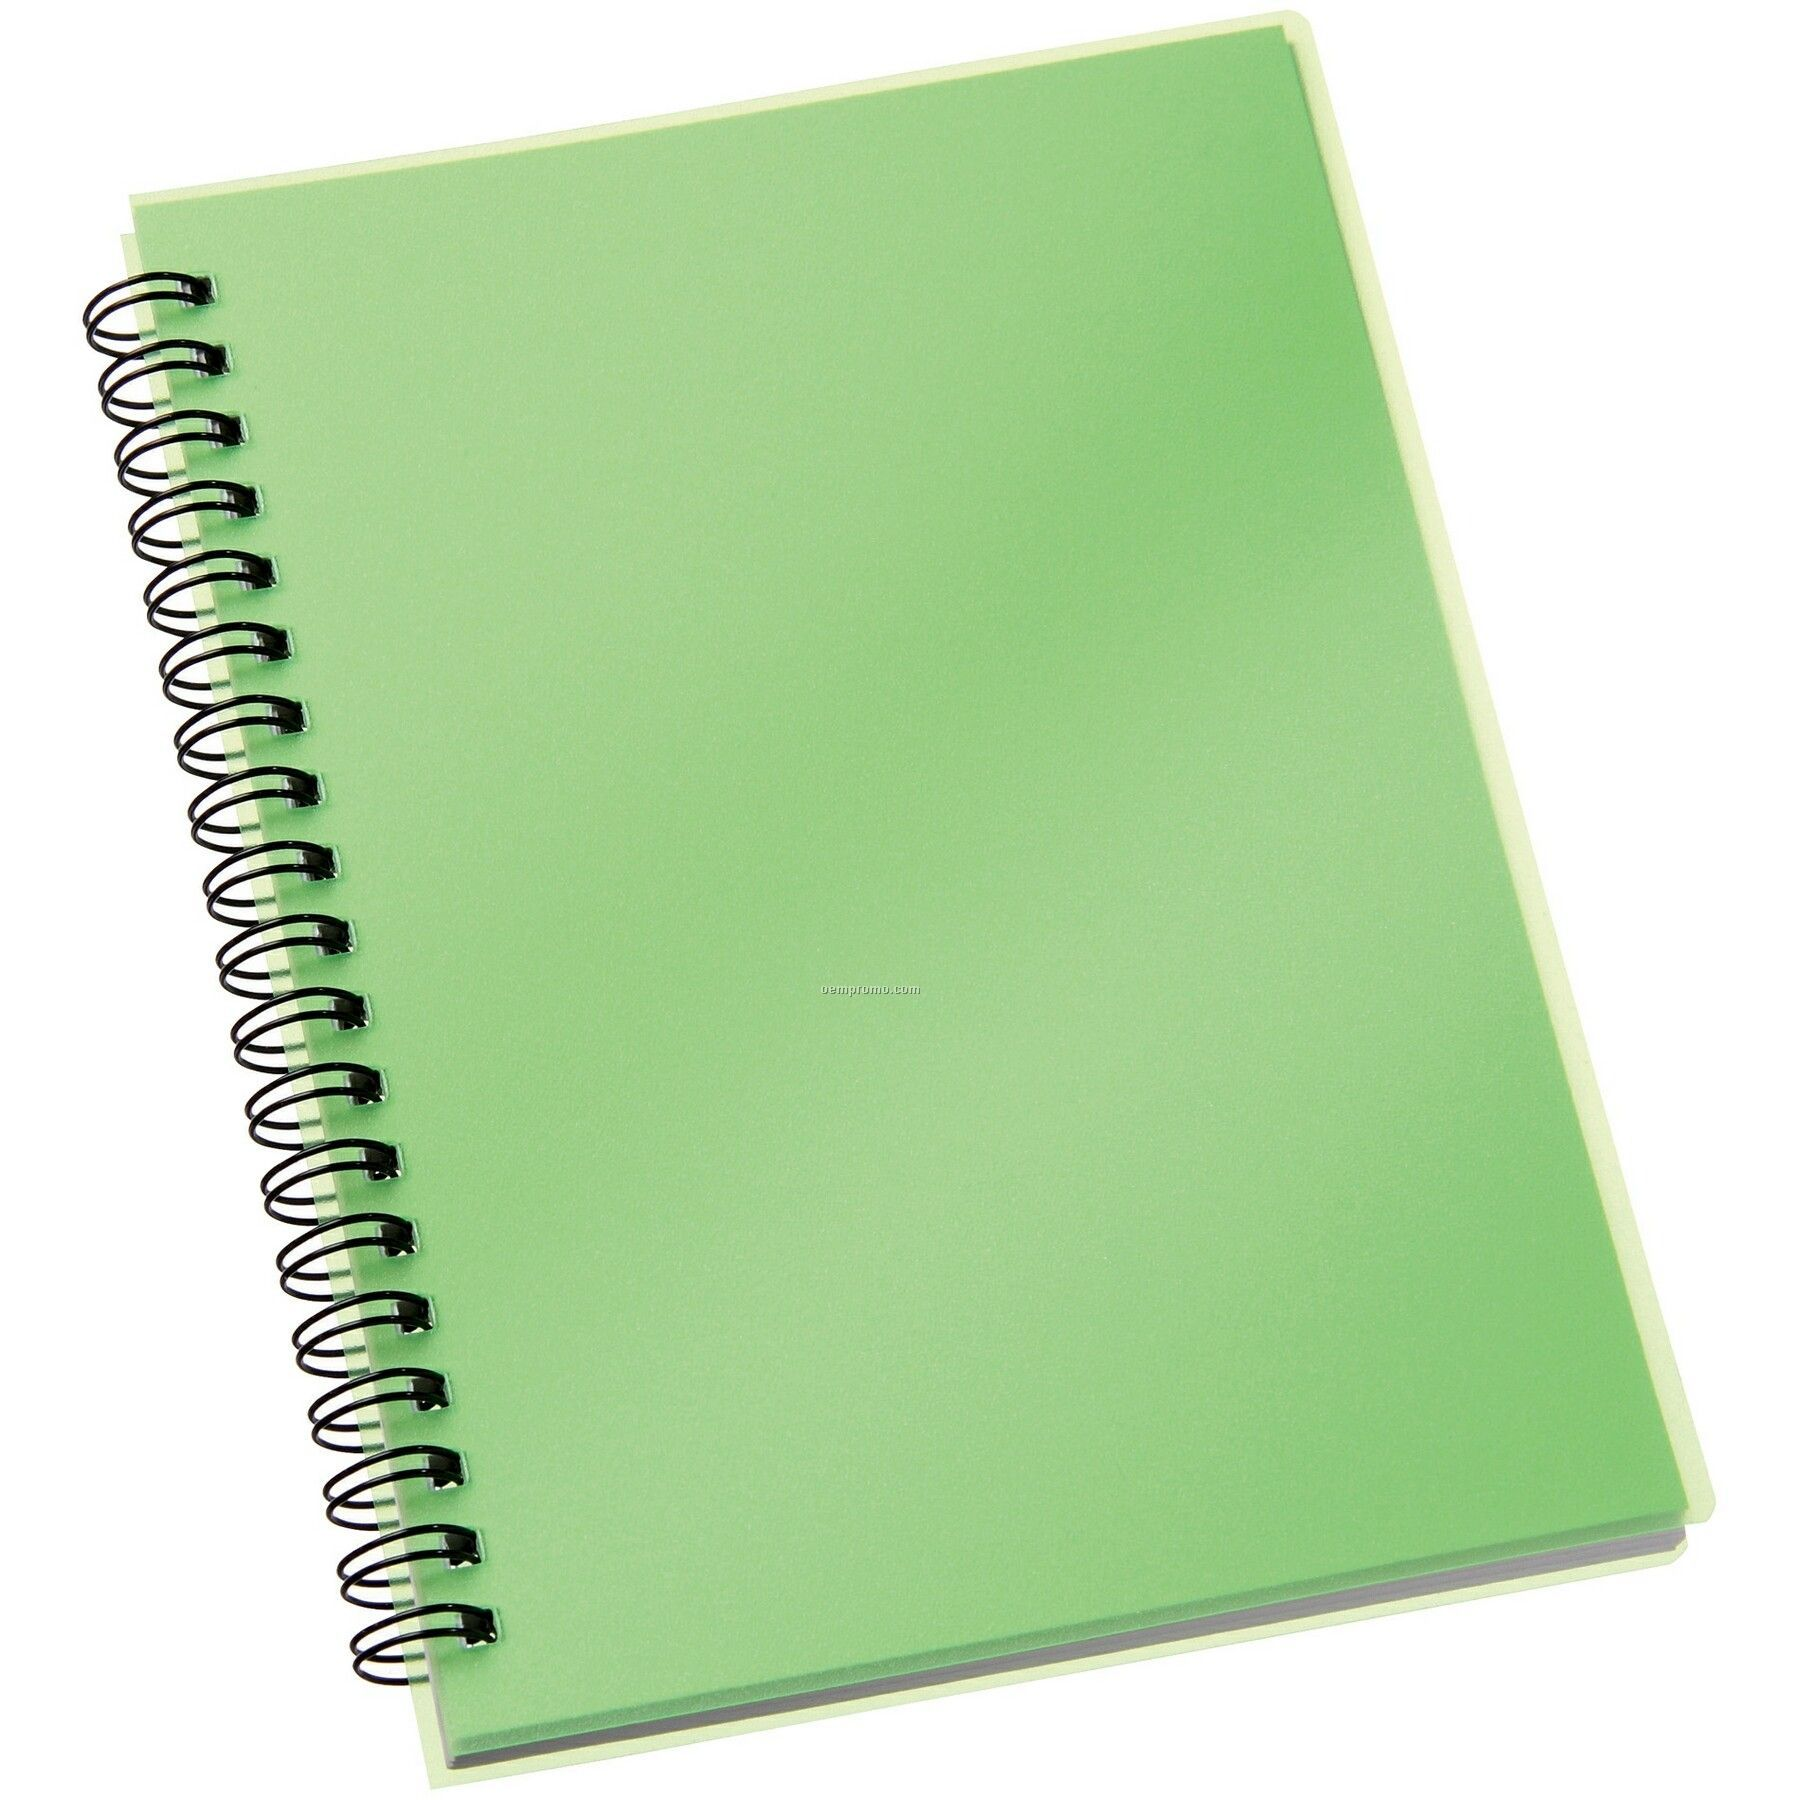 The-Duchess-Spiral-Notebook_58475427.jpg